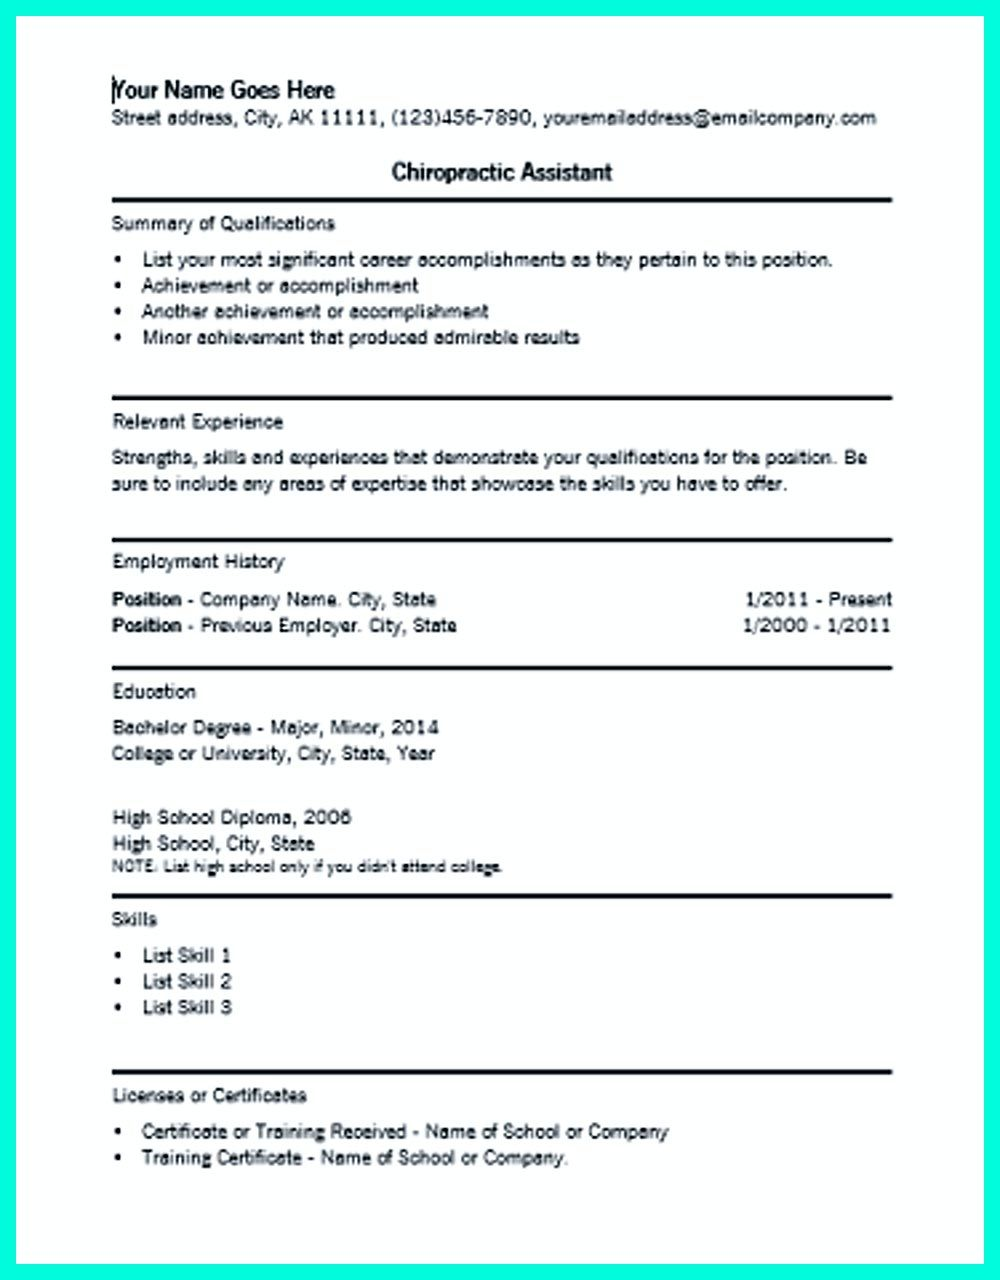 in chiropractic assistant resume chiropractic assistant objectives